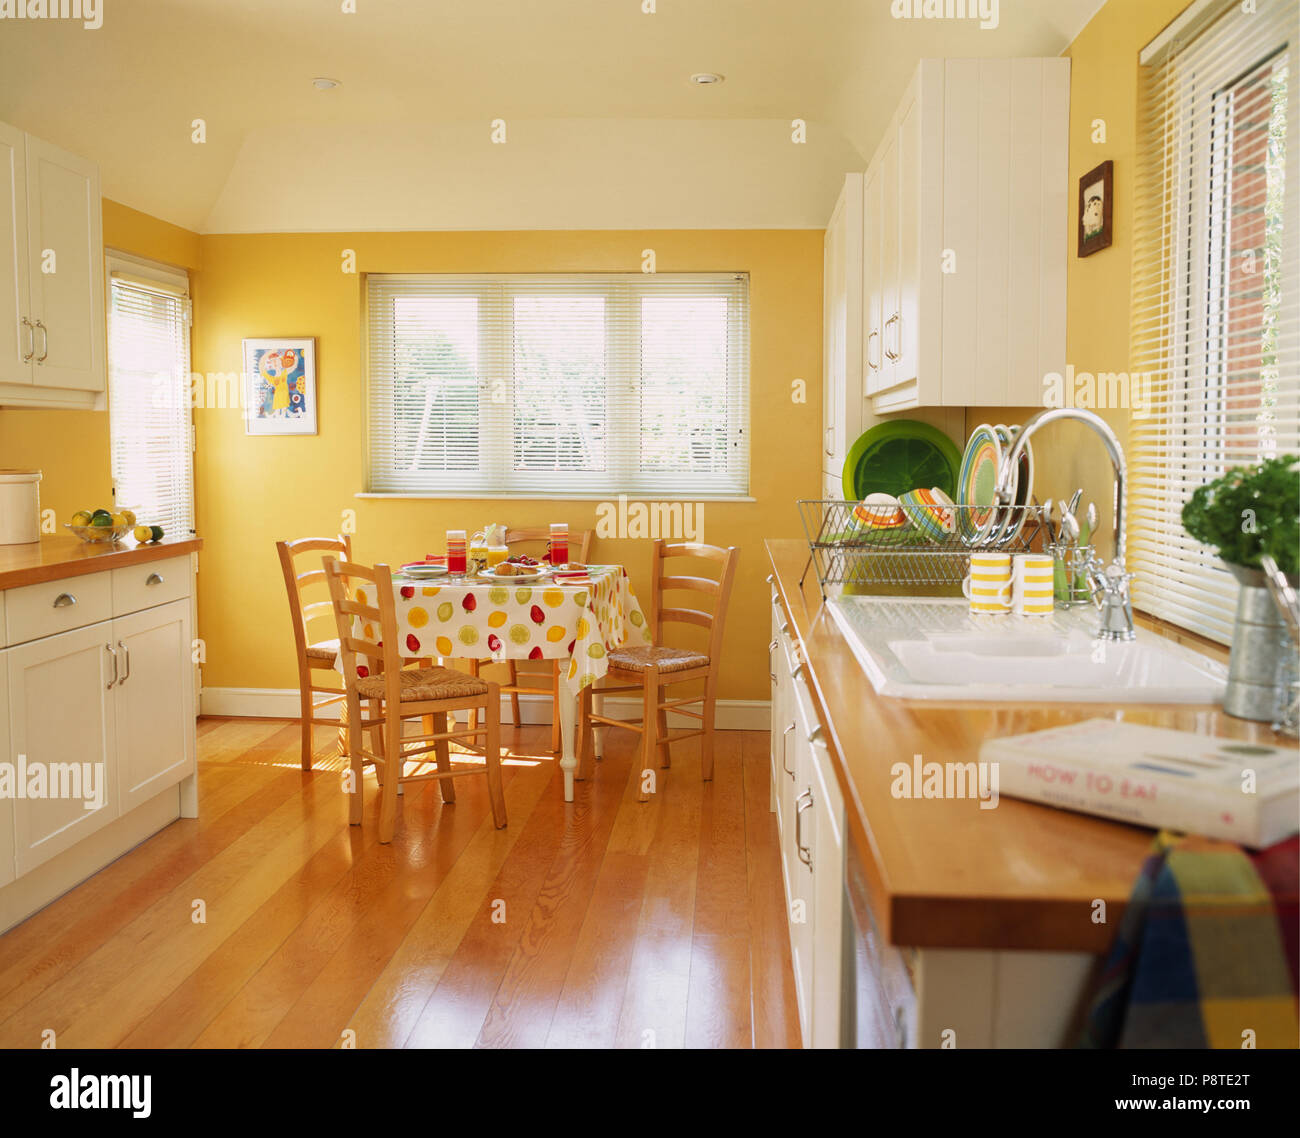 Wooden flooring in modern yellow kitchen with fitted white ...